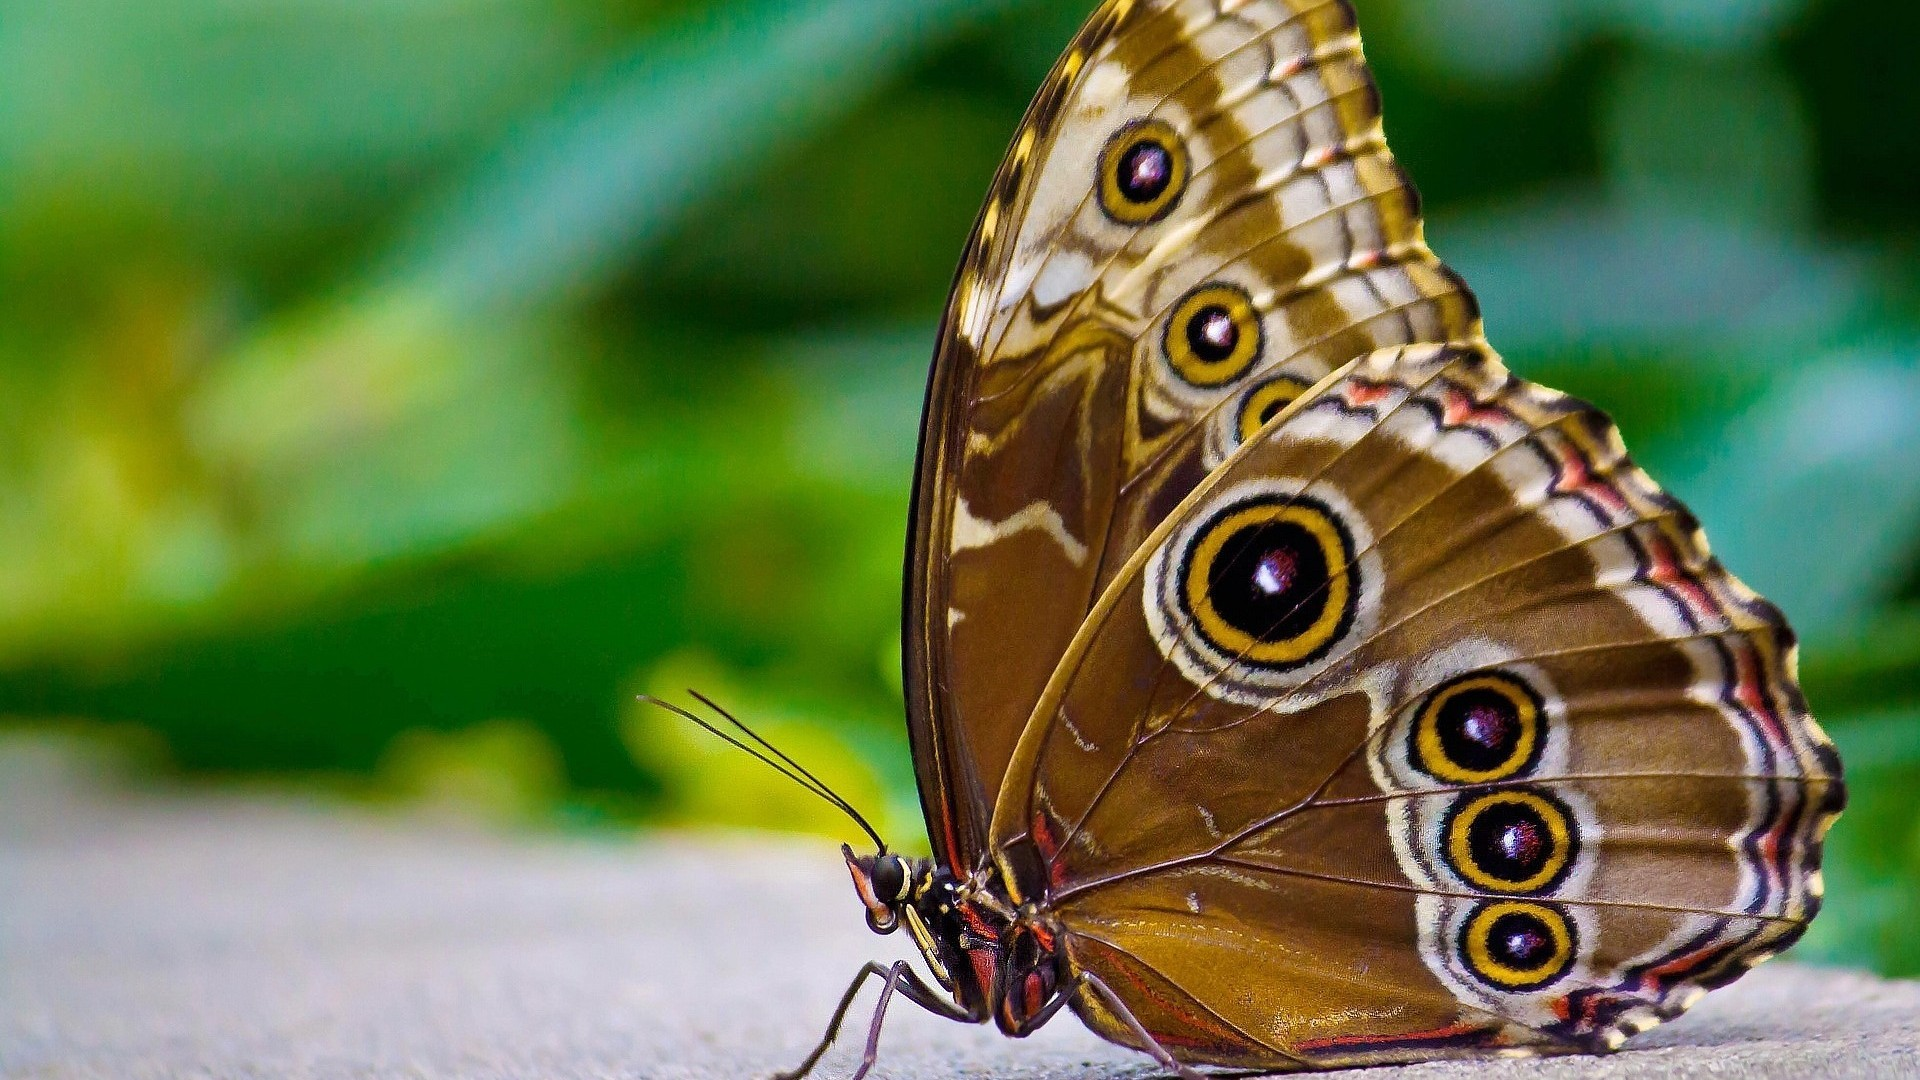 Singapore Wallpaper Hd 2 Insects Hd Wallpapers 1808 Insects Hd Wallpapers